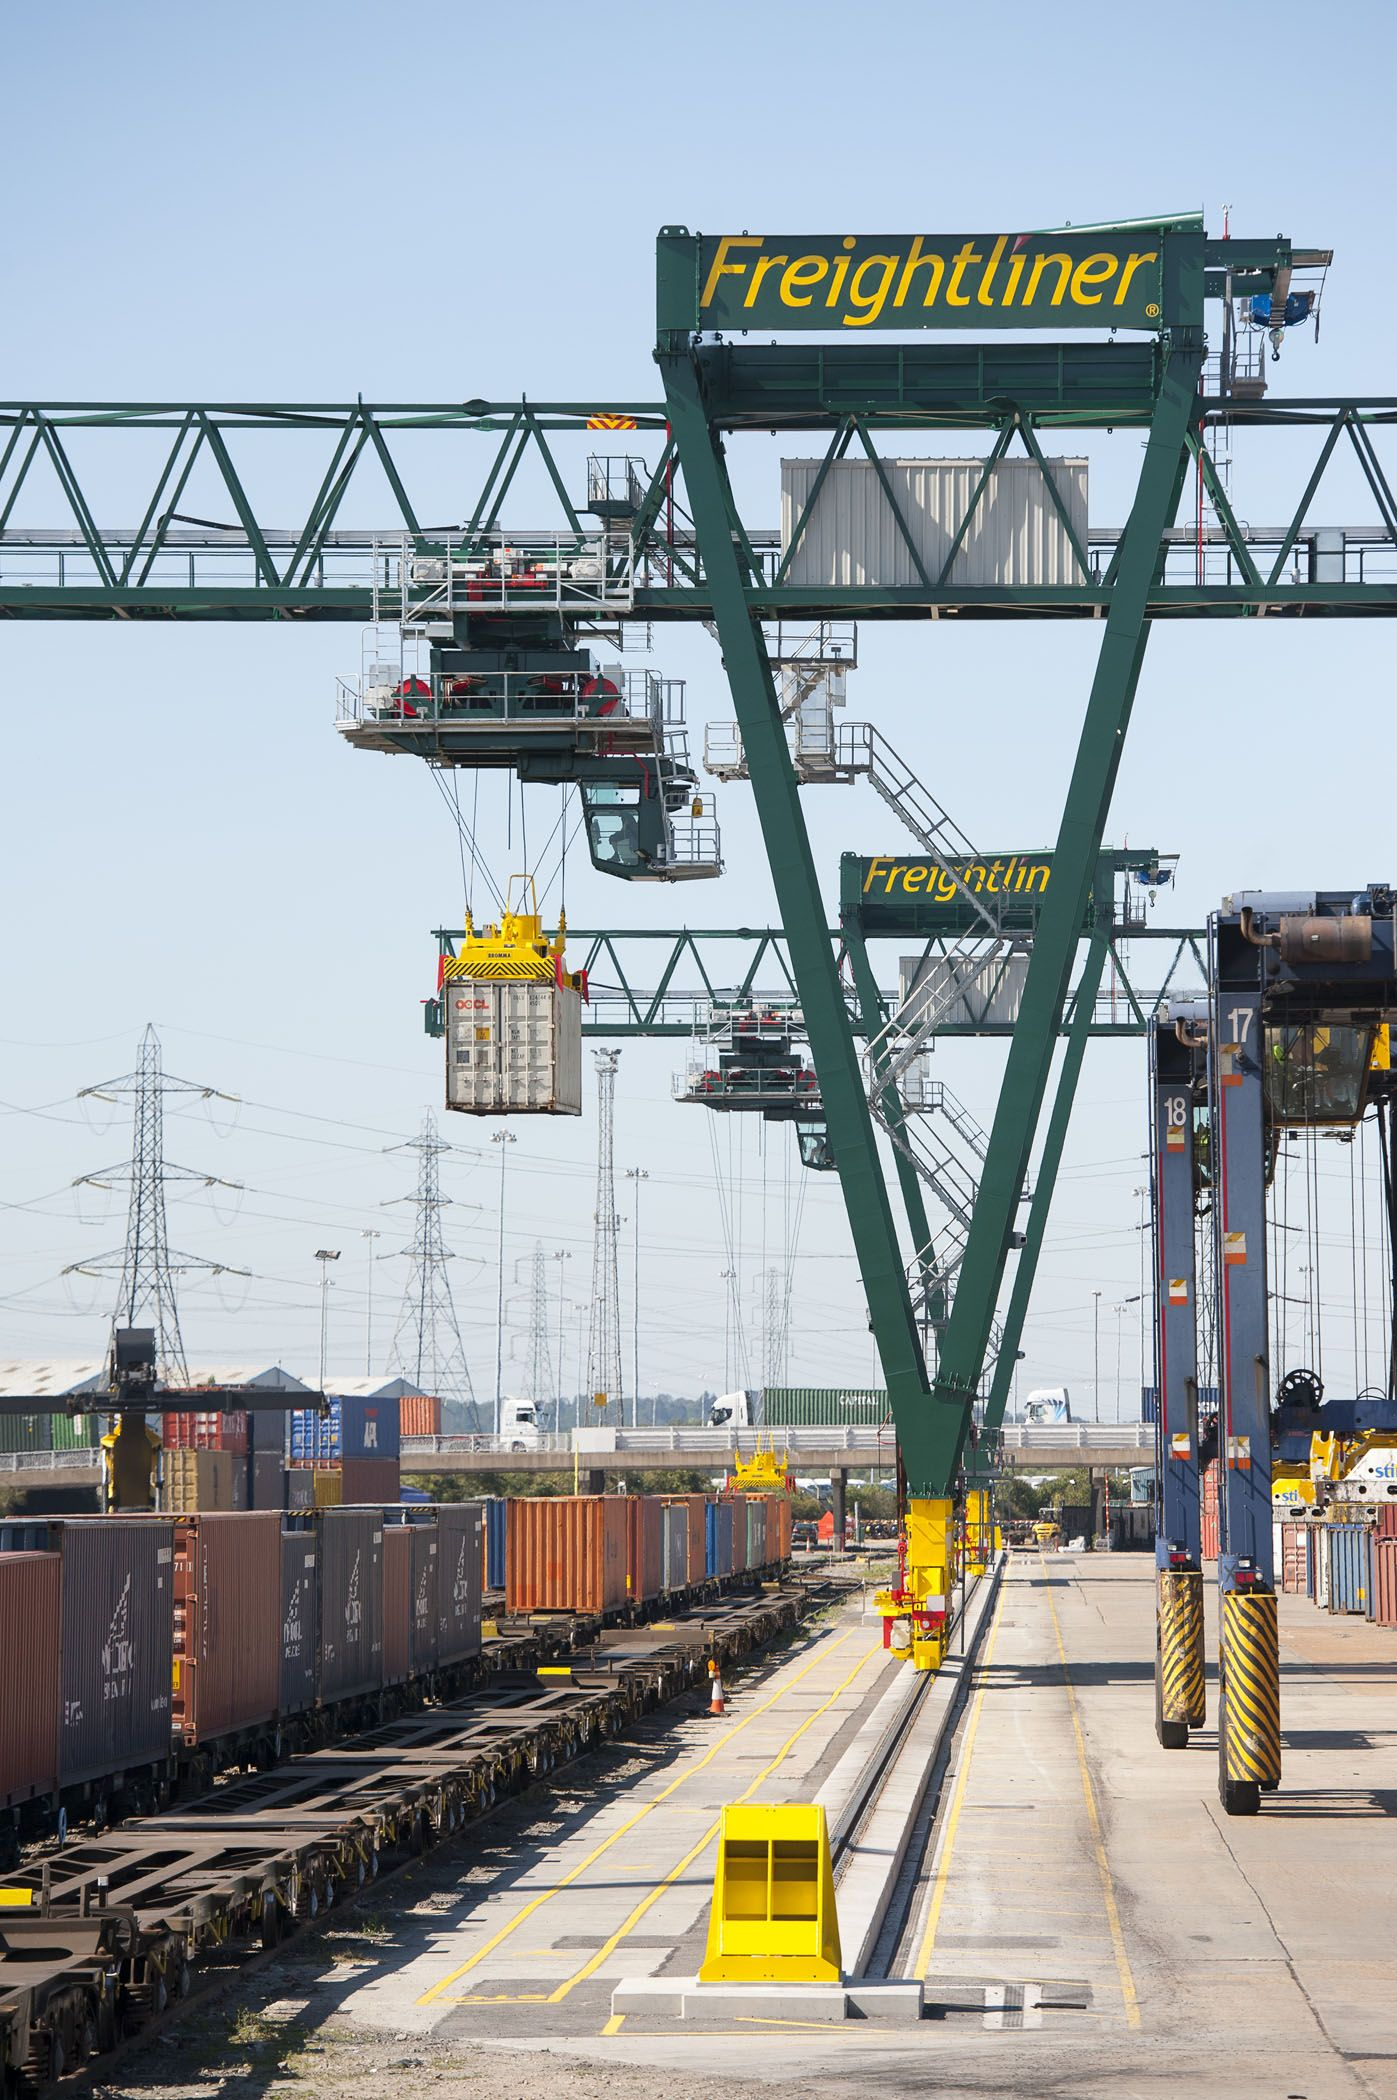 Freightliner ltd the uks most reliable rail freight